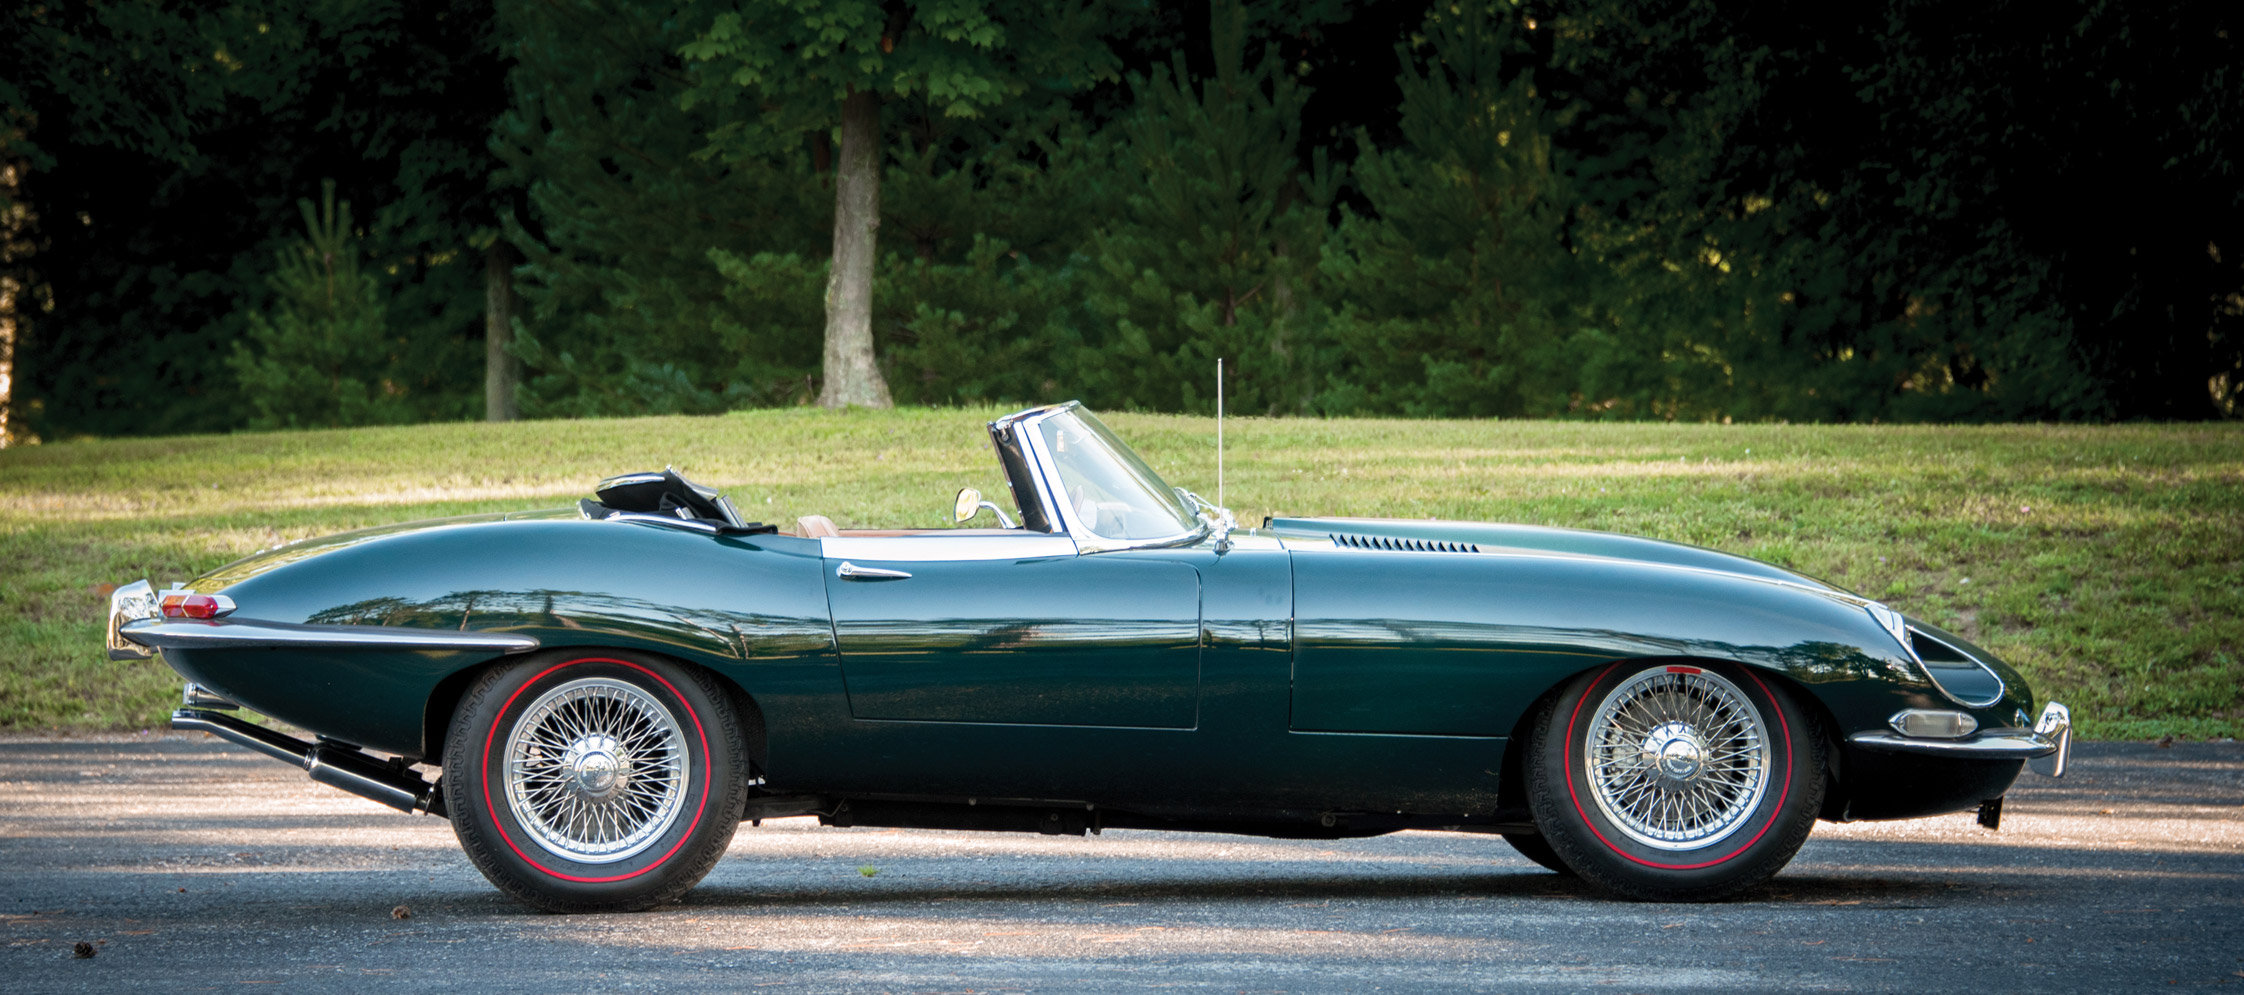 photo jaguar type e s rie 1 4 2l cabriolet 1968 m diatheque. Black Bedroom Furniture Sets. Home Design Ideas